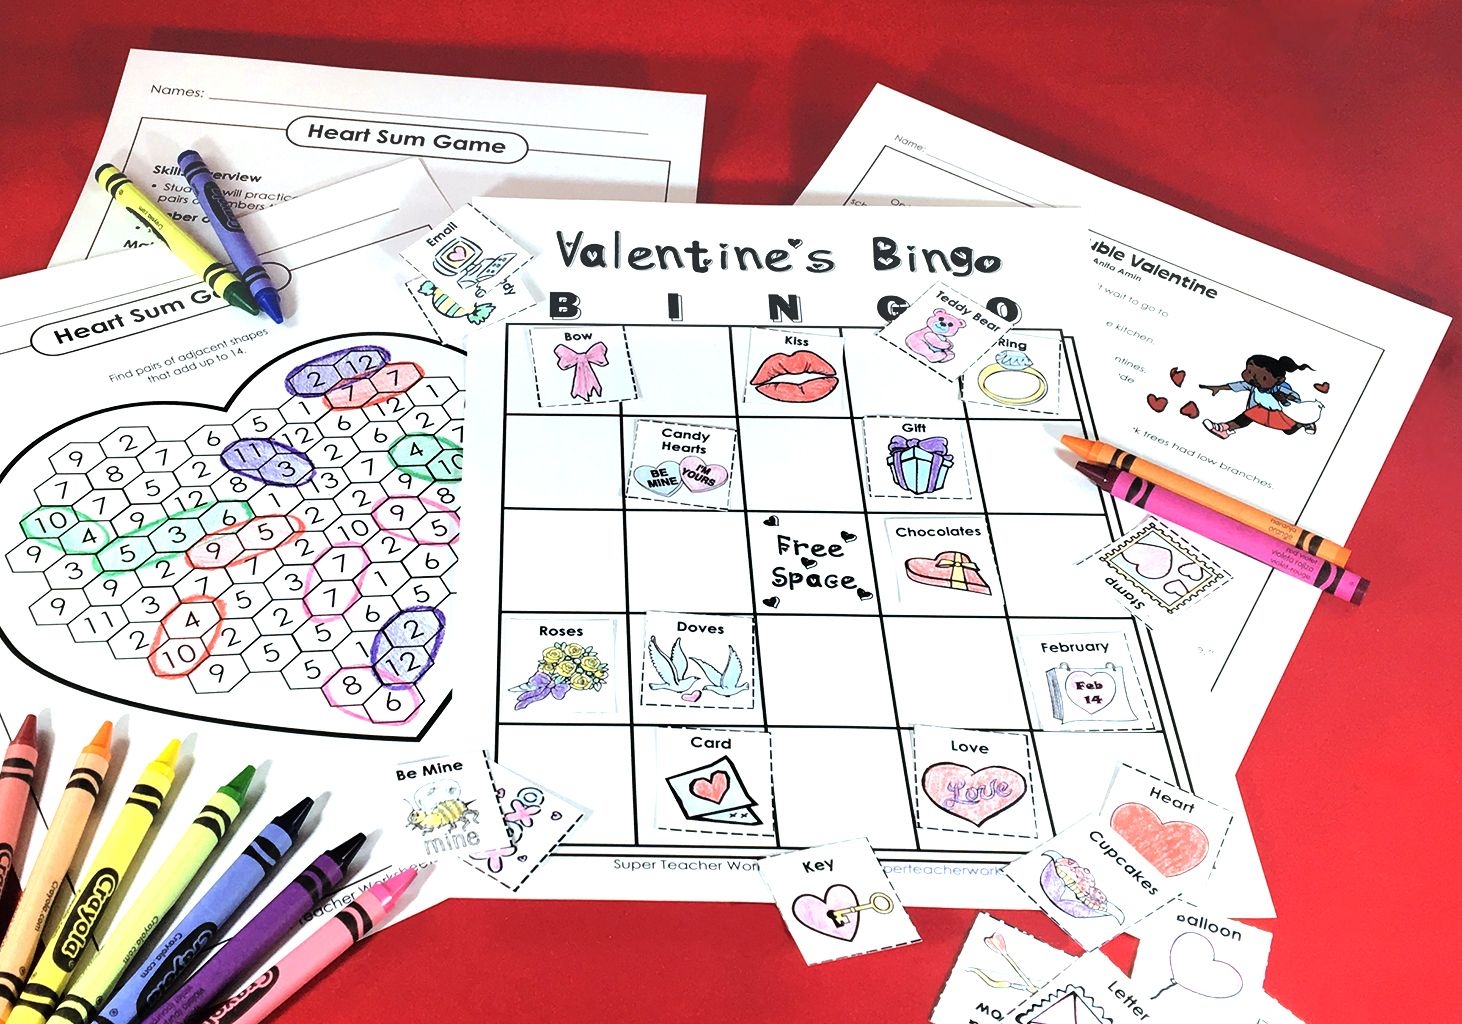 Print Out Educationalactivities To Celebrate Valentinesday With Your Students Go To The